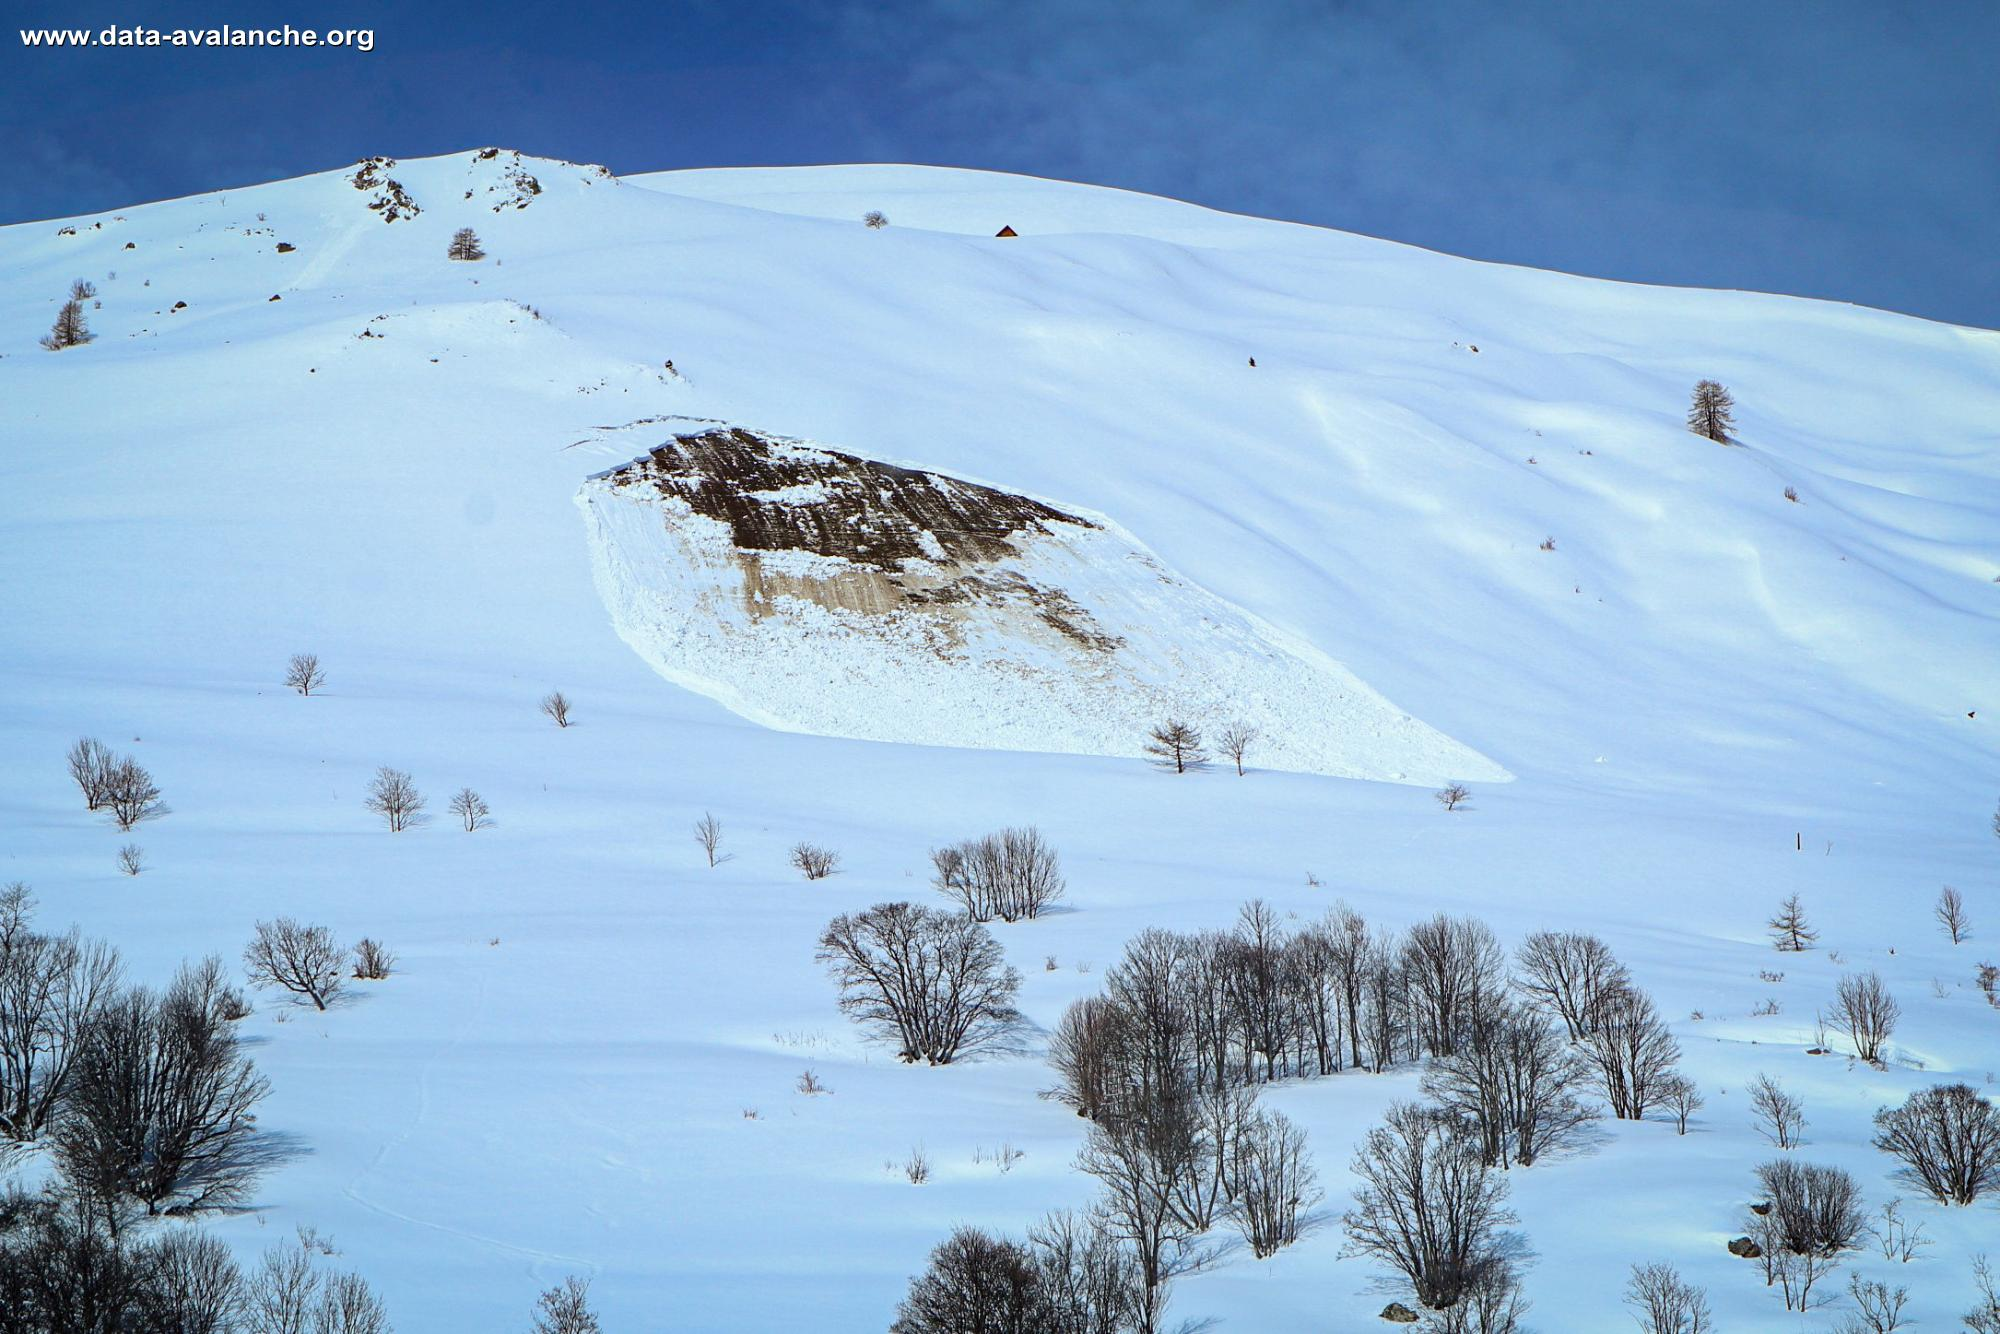 Avalanche Savoie - Photo 1 - © Assael Nicolas